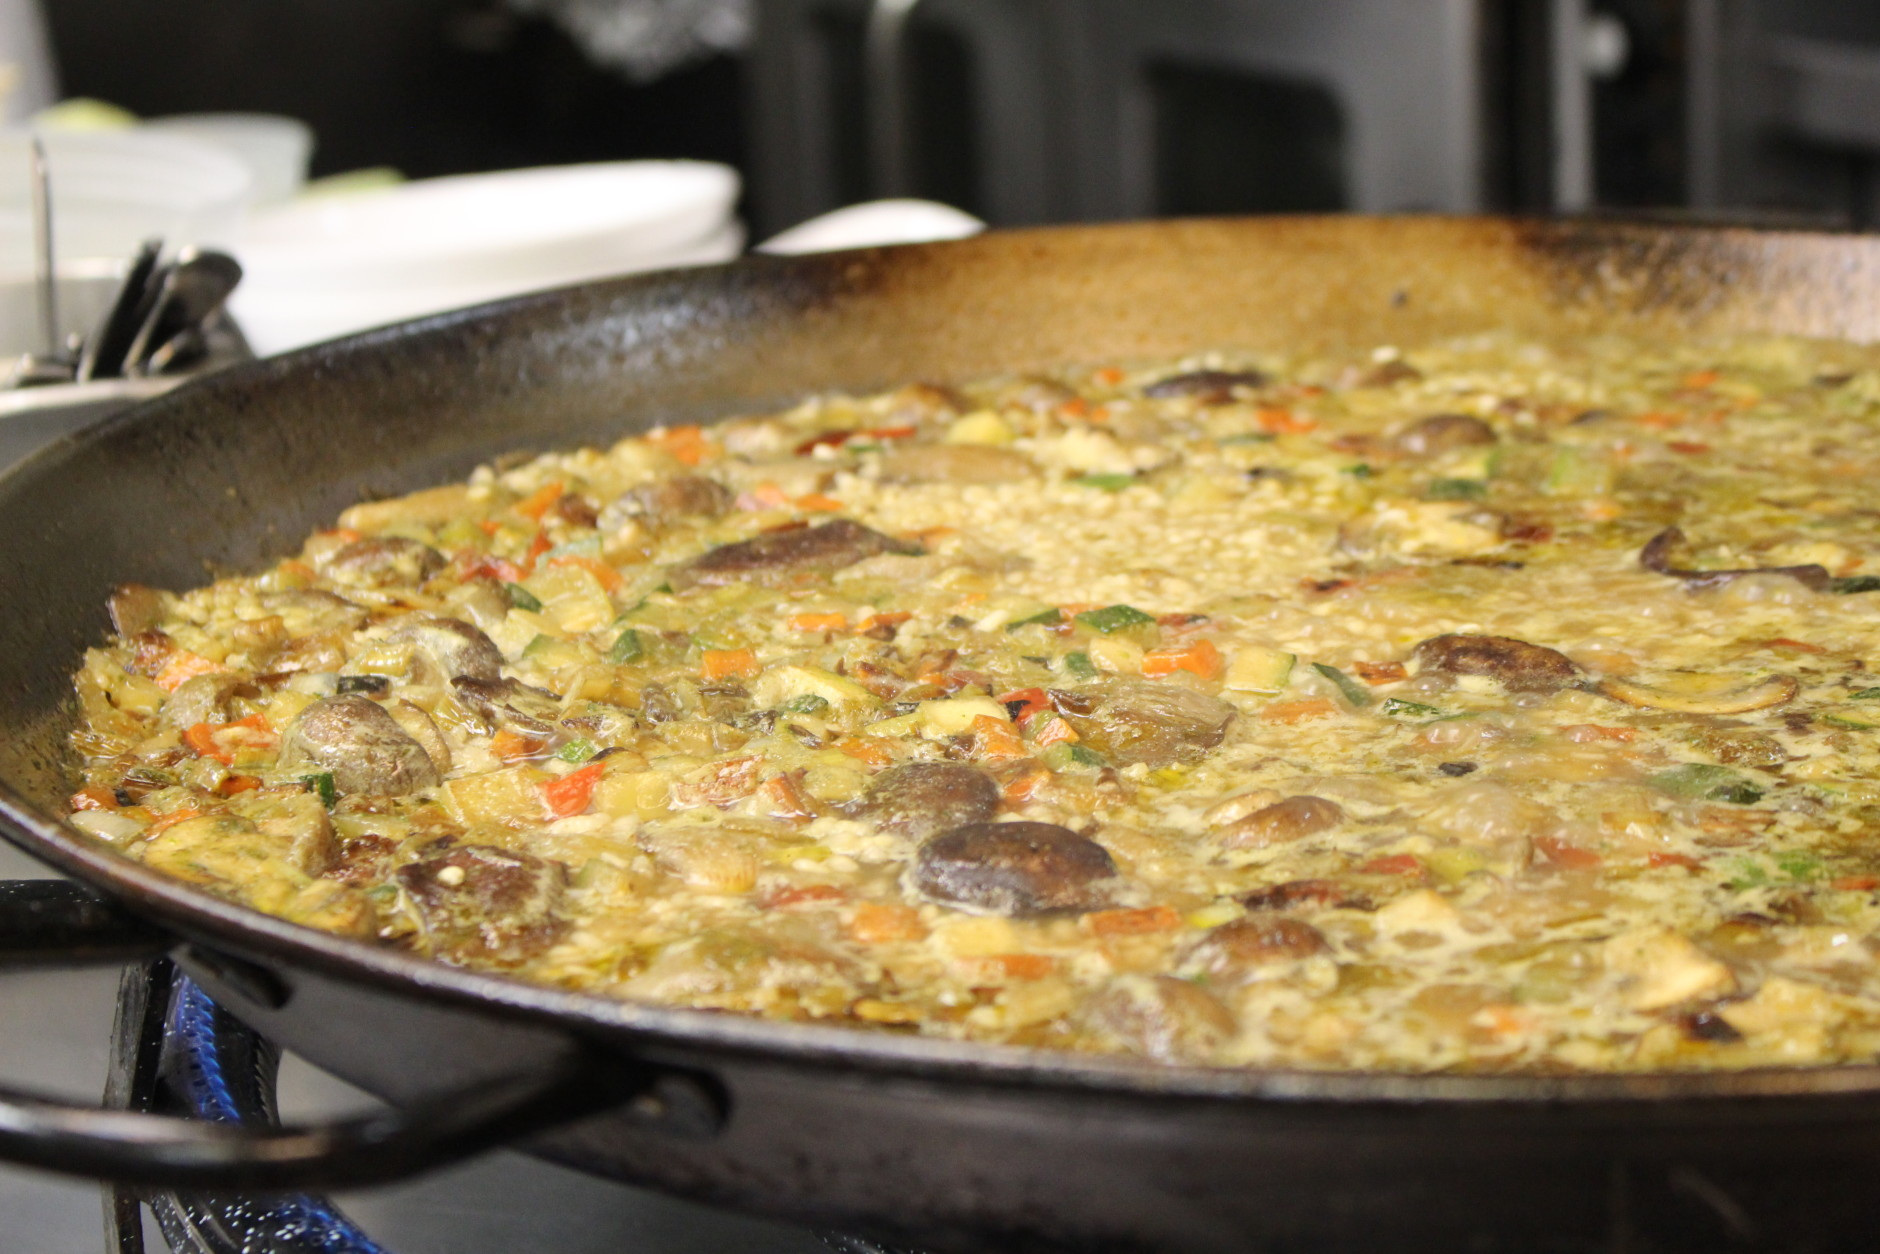 As the rice absorbs the stock, the pan will start to thicken up. It should go from the consistency of soup to a thick, creamy stew. (WTOP/Dana Gooley)